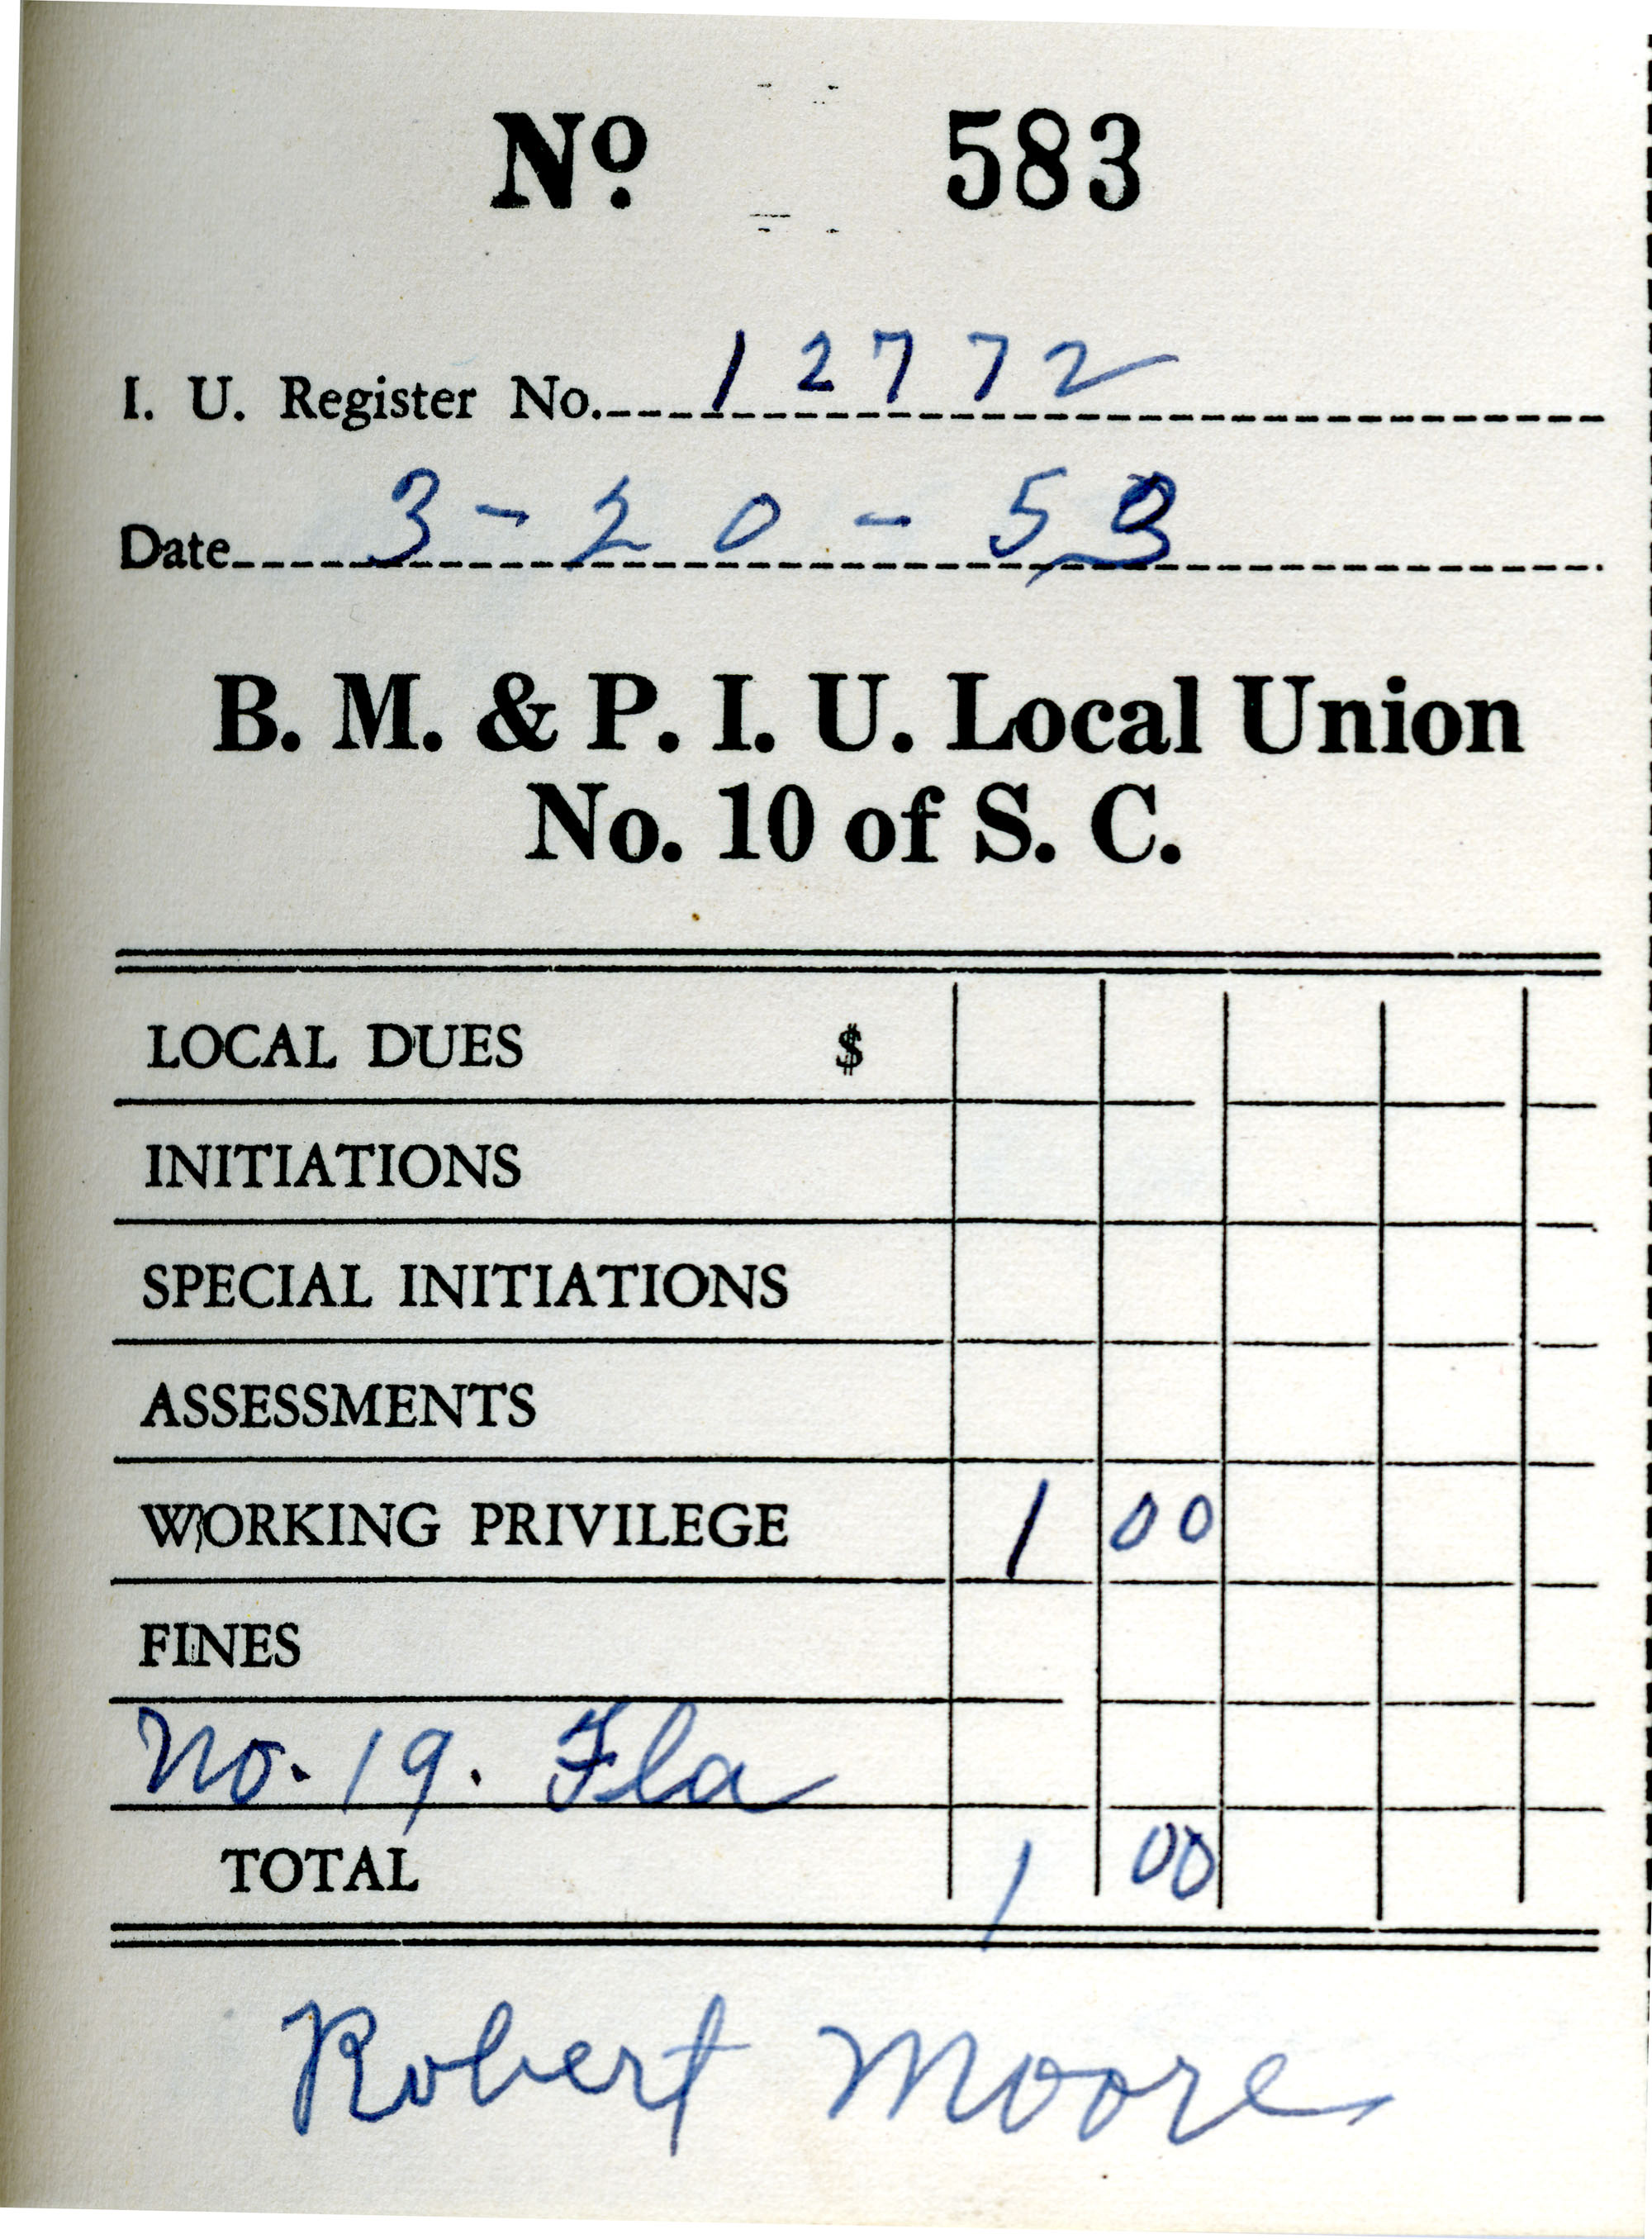 Receipt Book 1, Page 33